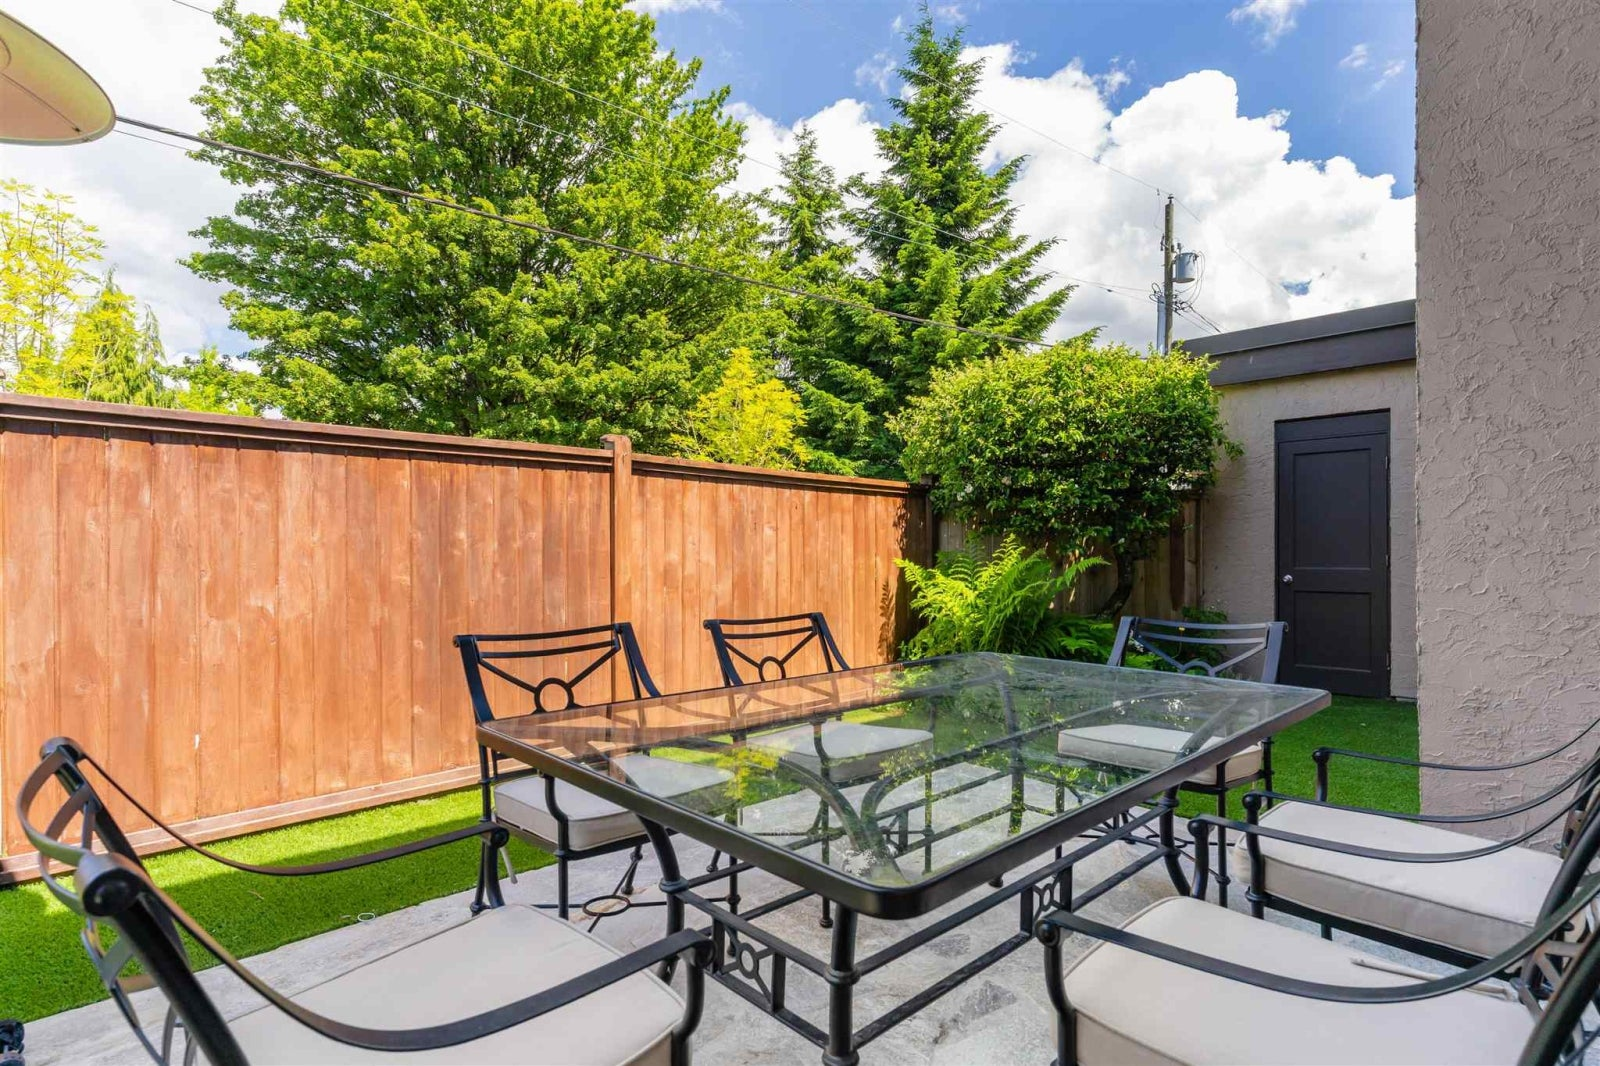 4 226 E 10TH STREET - Central Lonsdale Townhouse for sale, 3 Bedrooms (R2596161) #13